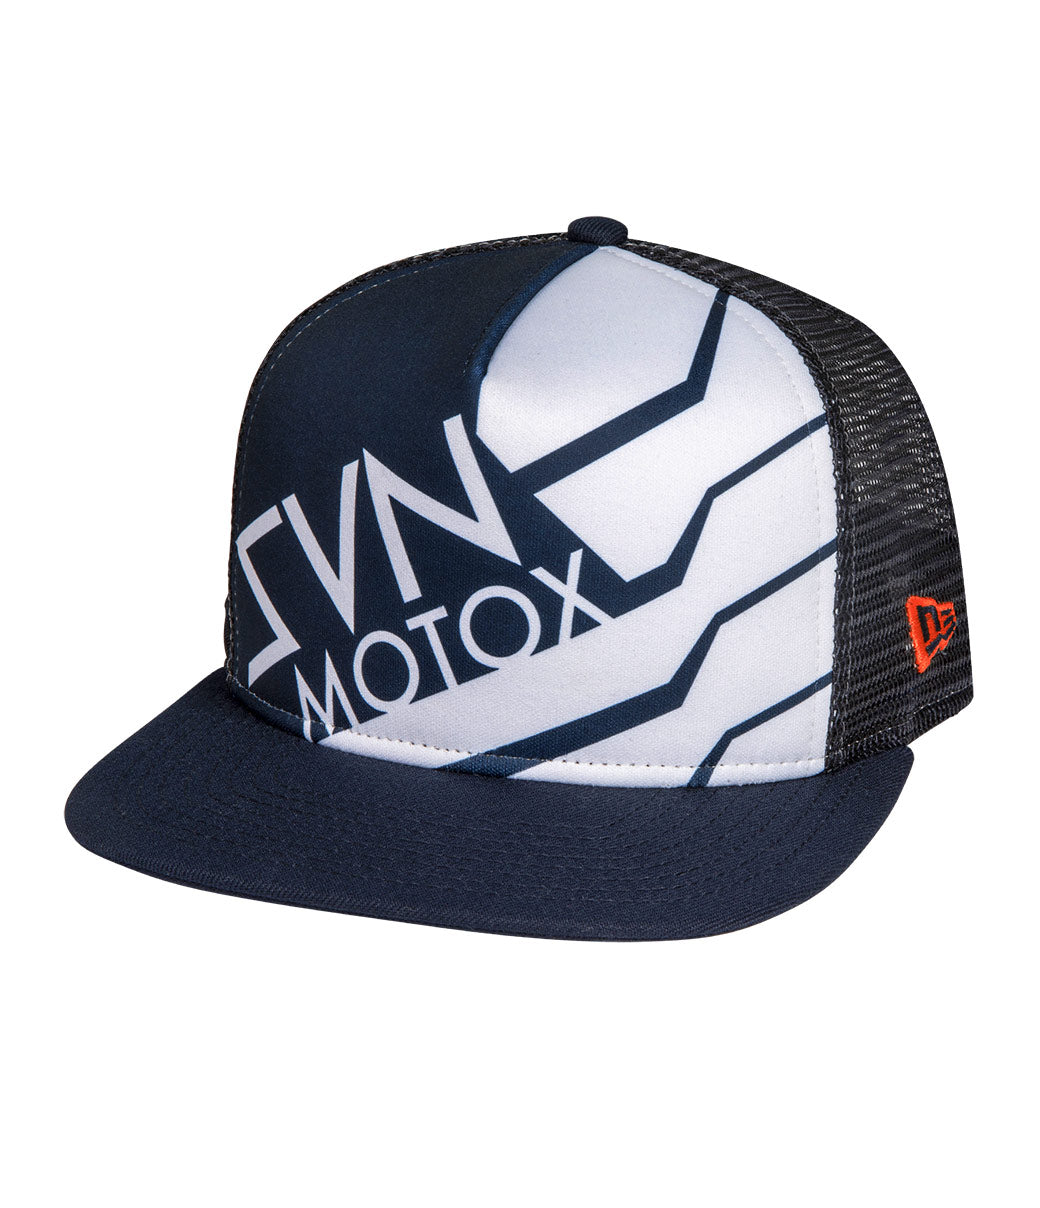 Youth Exo Hat - Navy